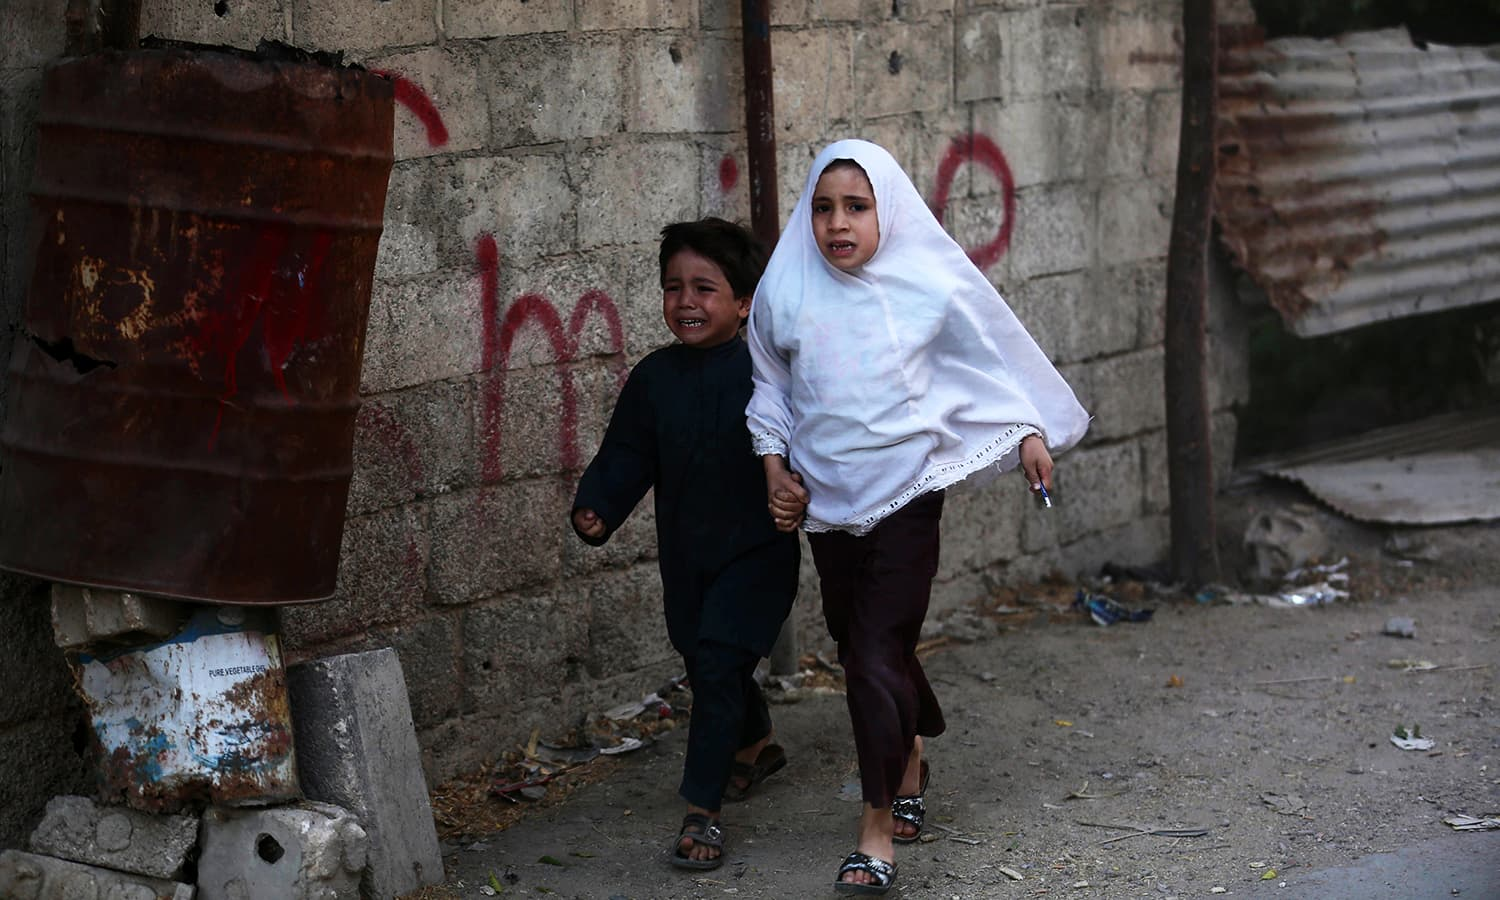 Syrian children run for cover following a reported airstrike on Kafr Batna, in the rebel-held eastern Ghouta area, on the outskirts of the capital Damascus, on September 30, 2016. ─ AFP